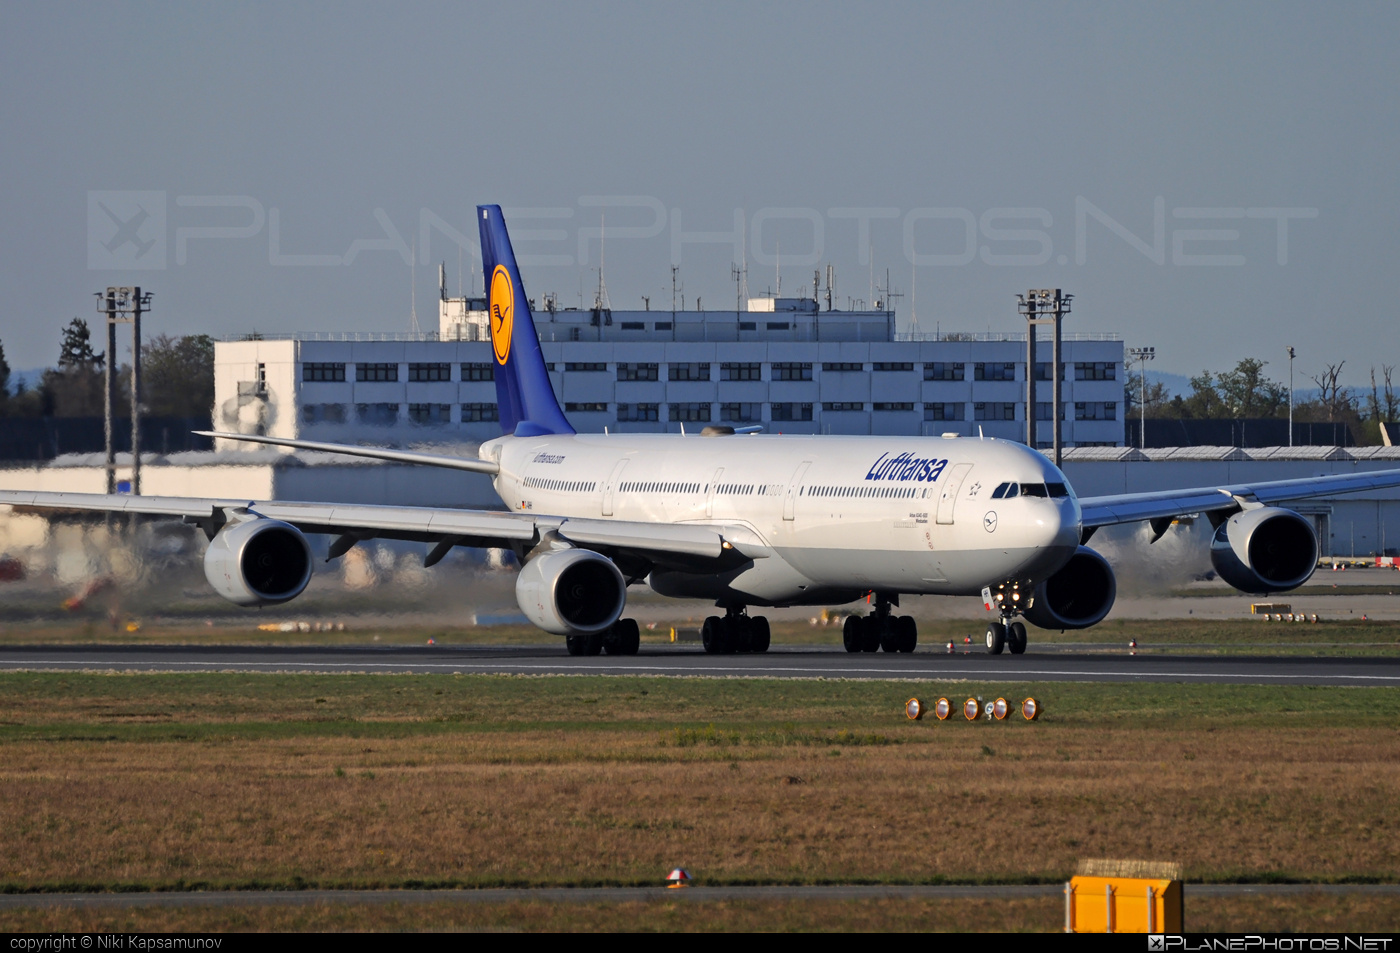 Airbus A340-642 - D-AIHH operated by Lufthansa #a340 #a340family #airbus #airbus340 #lufthansa